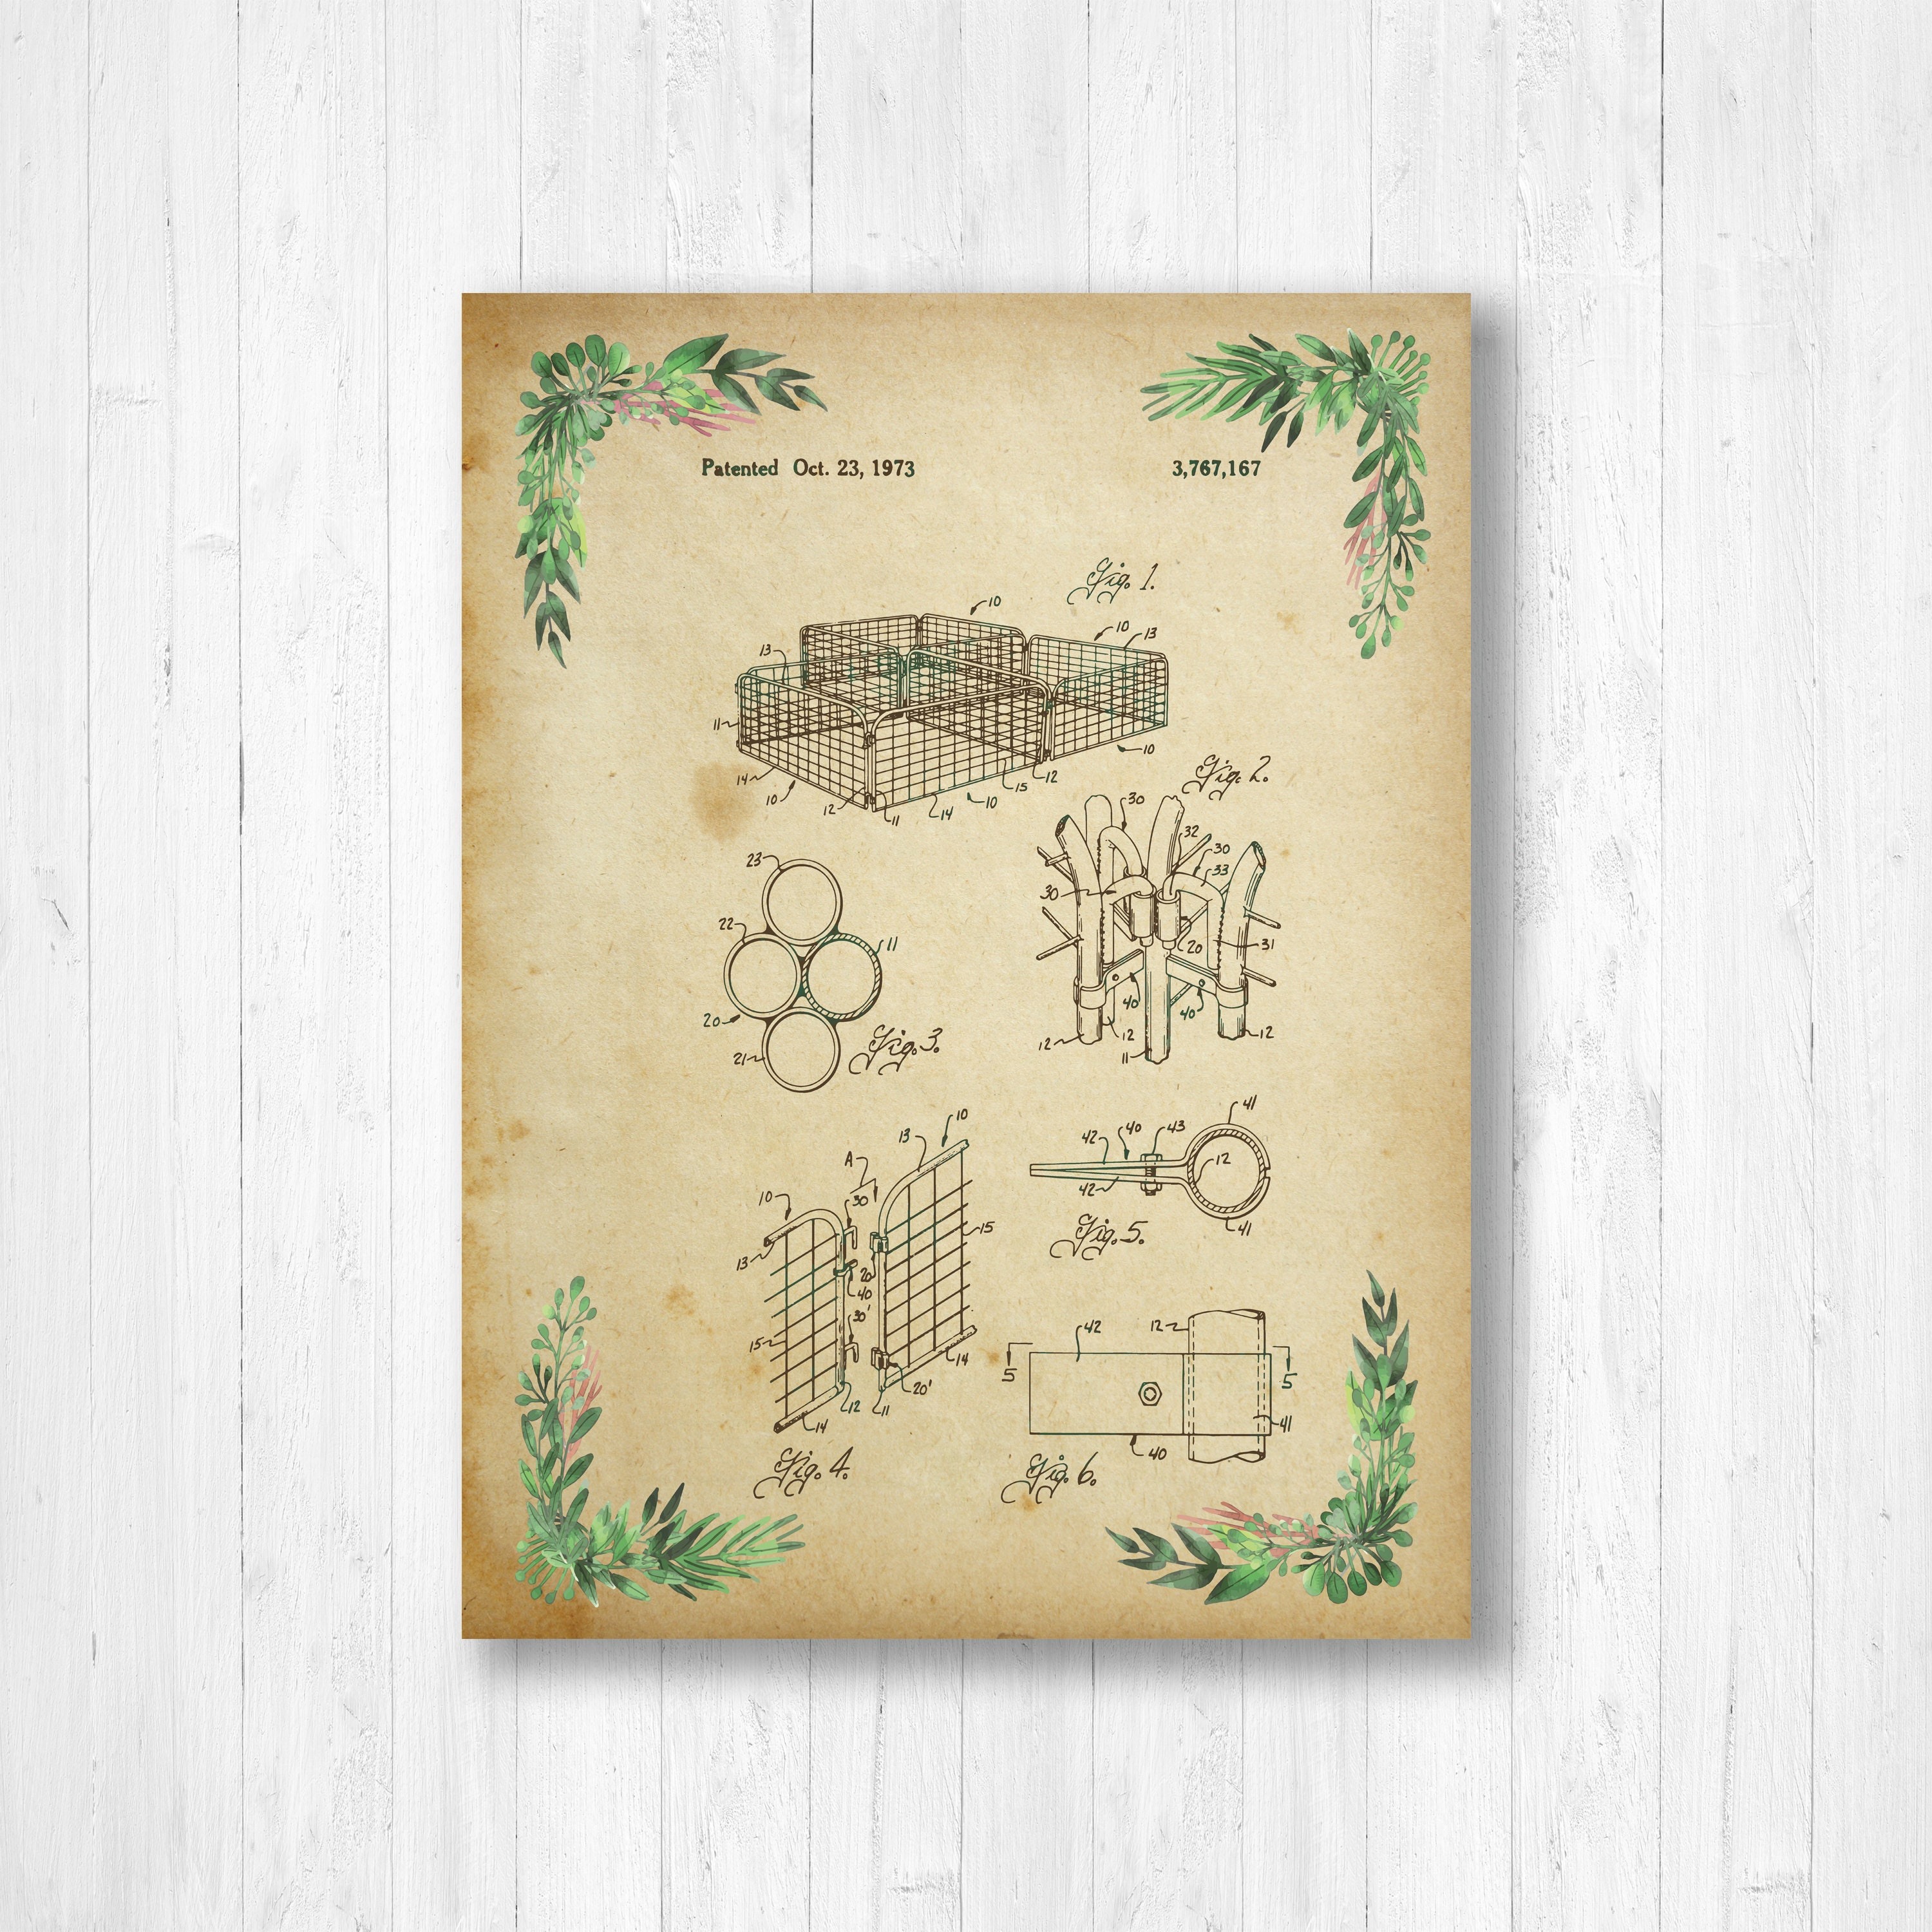 Fence, Patent, Garden, Floral Patent, Invention, Watercolor, Floral ...